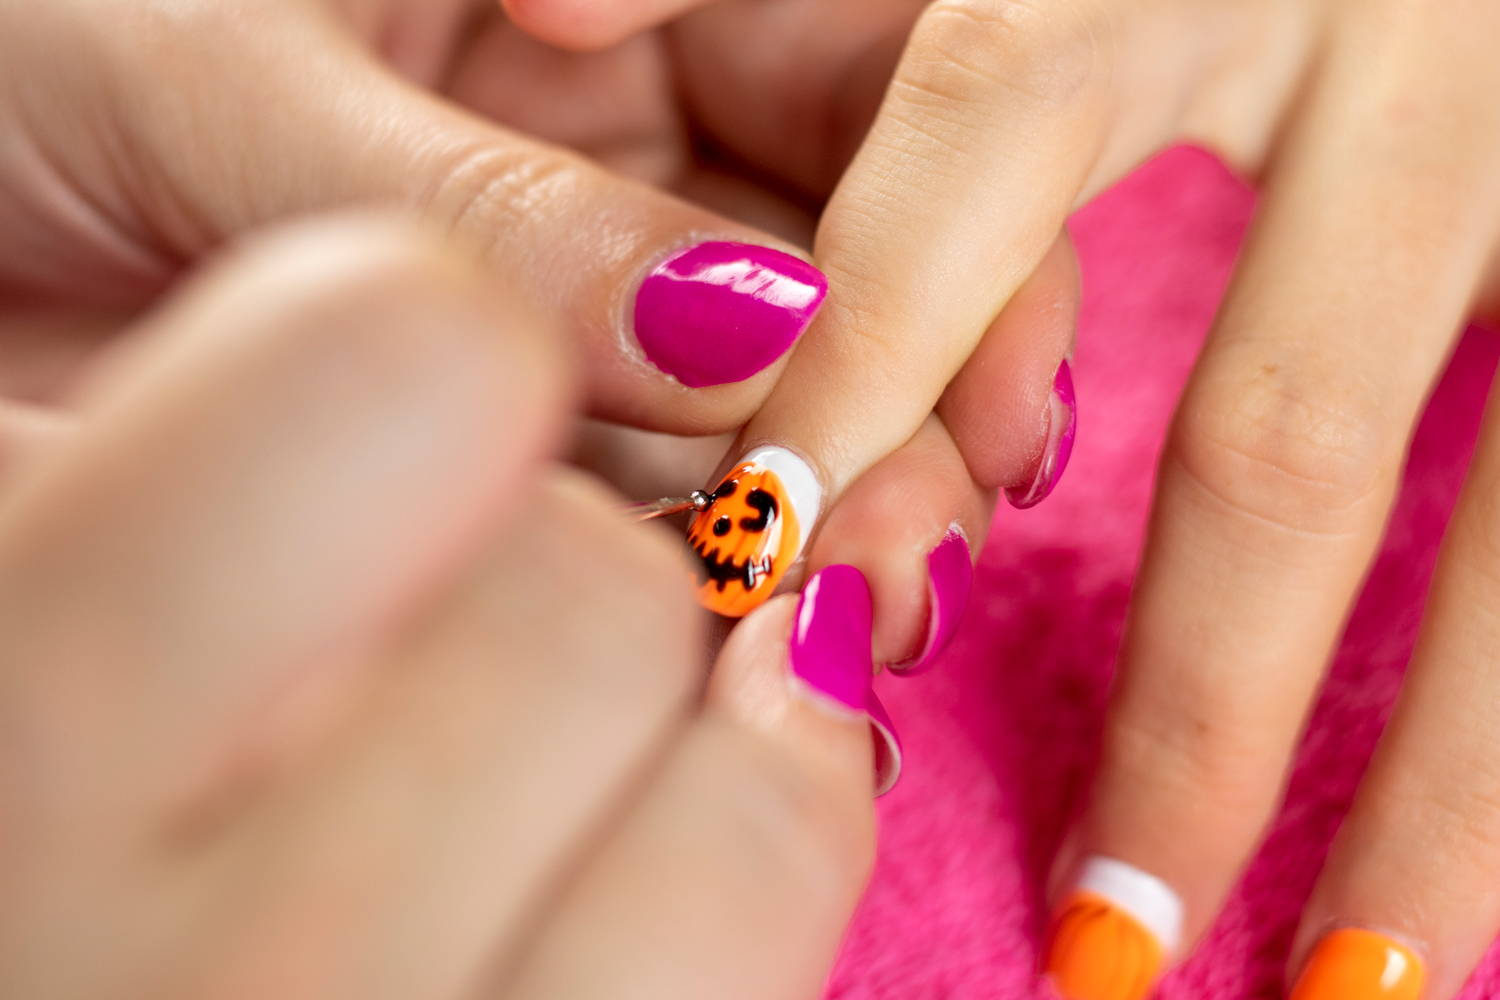 Pumpkin nails eye details added to nail using a dotting tool and ORLY Liquid Vinyl